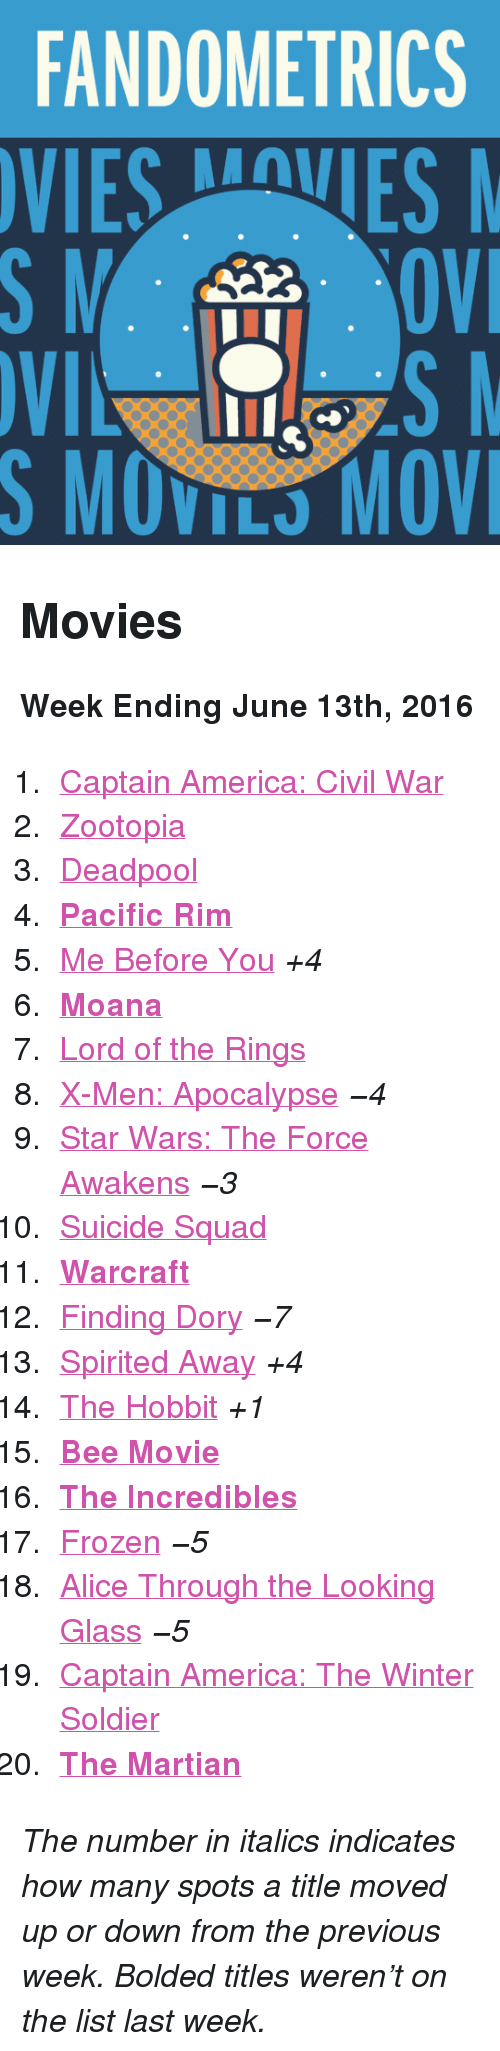 "moana: FANDOMETRICS  VIESVES  S MOVILS MOV <h2>Movies</h2><p><b>Week Ending June 13th, 2016</b></p><ol><li><a href=""http://www.tumblr.com/search/captain%20america%20civil%20war"">Captain America: Civil War</a></li>  <li><a href=""http://www.tumblr.com/search/zootopia"">Zootopia</a></li>  <li><a href=""http://www.tumblr.com/search/deadpool"">Deadpool</a></li>  <li><a href=""http://www.tumblr.com/search/pacific%20rim""><b>Pacific Rim</b></a></li>  <li><a href=""http://www.tumblr.com/search/me%20before%20you"">Me Before You</a> <i>+4</i></li>  <li><a href=""http://www.tumblr.com/search/moana""><b>Moana</b></a></li>  <li><a href=""http://www.tumblr.com/search/lotr"">Lord of the Rings</a> </li>  <li><a href=""http://www.tumblr.com/search/x%20men%20apocalypse"">X-Men: Apocalypse</a> <i>−4</i></li>  <li><a href=""http://www.tumblr.com/search/the%20force%20awakens"">Star Wars: The Force Awakens</a> <i>−3</i></li>  <li><a href=""http://www.tumblr.com/search/suicide%20squad"">Suicide Squad</a> </li>  <li><a href=""http://www.tumblr.com/search/warcraft""><b>Warcraft</b></a></li>  <li><a href=""http://www.tumblr.com/search/finding%20dory"">Finding Dory</a> <i>−7</i></li>  <li><a href=""http://www.tumblr.com/search/spirited%20away"">Spirited Away</a> <i>+4</i></li>  <li><a href=""http://www.tumblr.com/search/the%20hobbit"">The Hobbit</a> <i>+1</i></li>  <li><a href=""http://www.tumblr.com/search/bee%20movie""><b>Bee Movie</b></a></li>  <li><a href=""http://www.tumblr.com/search/the%20incredibles""><b>The Incredibles</b></a></li>  <li><a href=""http://www.tumblr.com/search/frozen"">Frozen</a> <i>−5</i></li>  <li><a href=""http://www.tumblr.com/search/alice%20through%20the%20looking%20glass"">Alice Through the Looking Glass</a> <i>−5</i></li>  <li><a href=""http://www.tumblr.com/search/catws"">Captain America: The Winter Soldier</a></li>  <li><a href=""http://www.tumblr.com/search/the%20martian""><b>The Martian</b></a></li></ol><p><i>The number in italics indicates how many spots a title moved up or down from the previous week. Bolded titles weren't on the list last week.</i></p>"